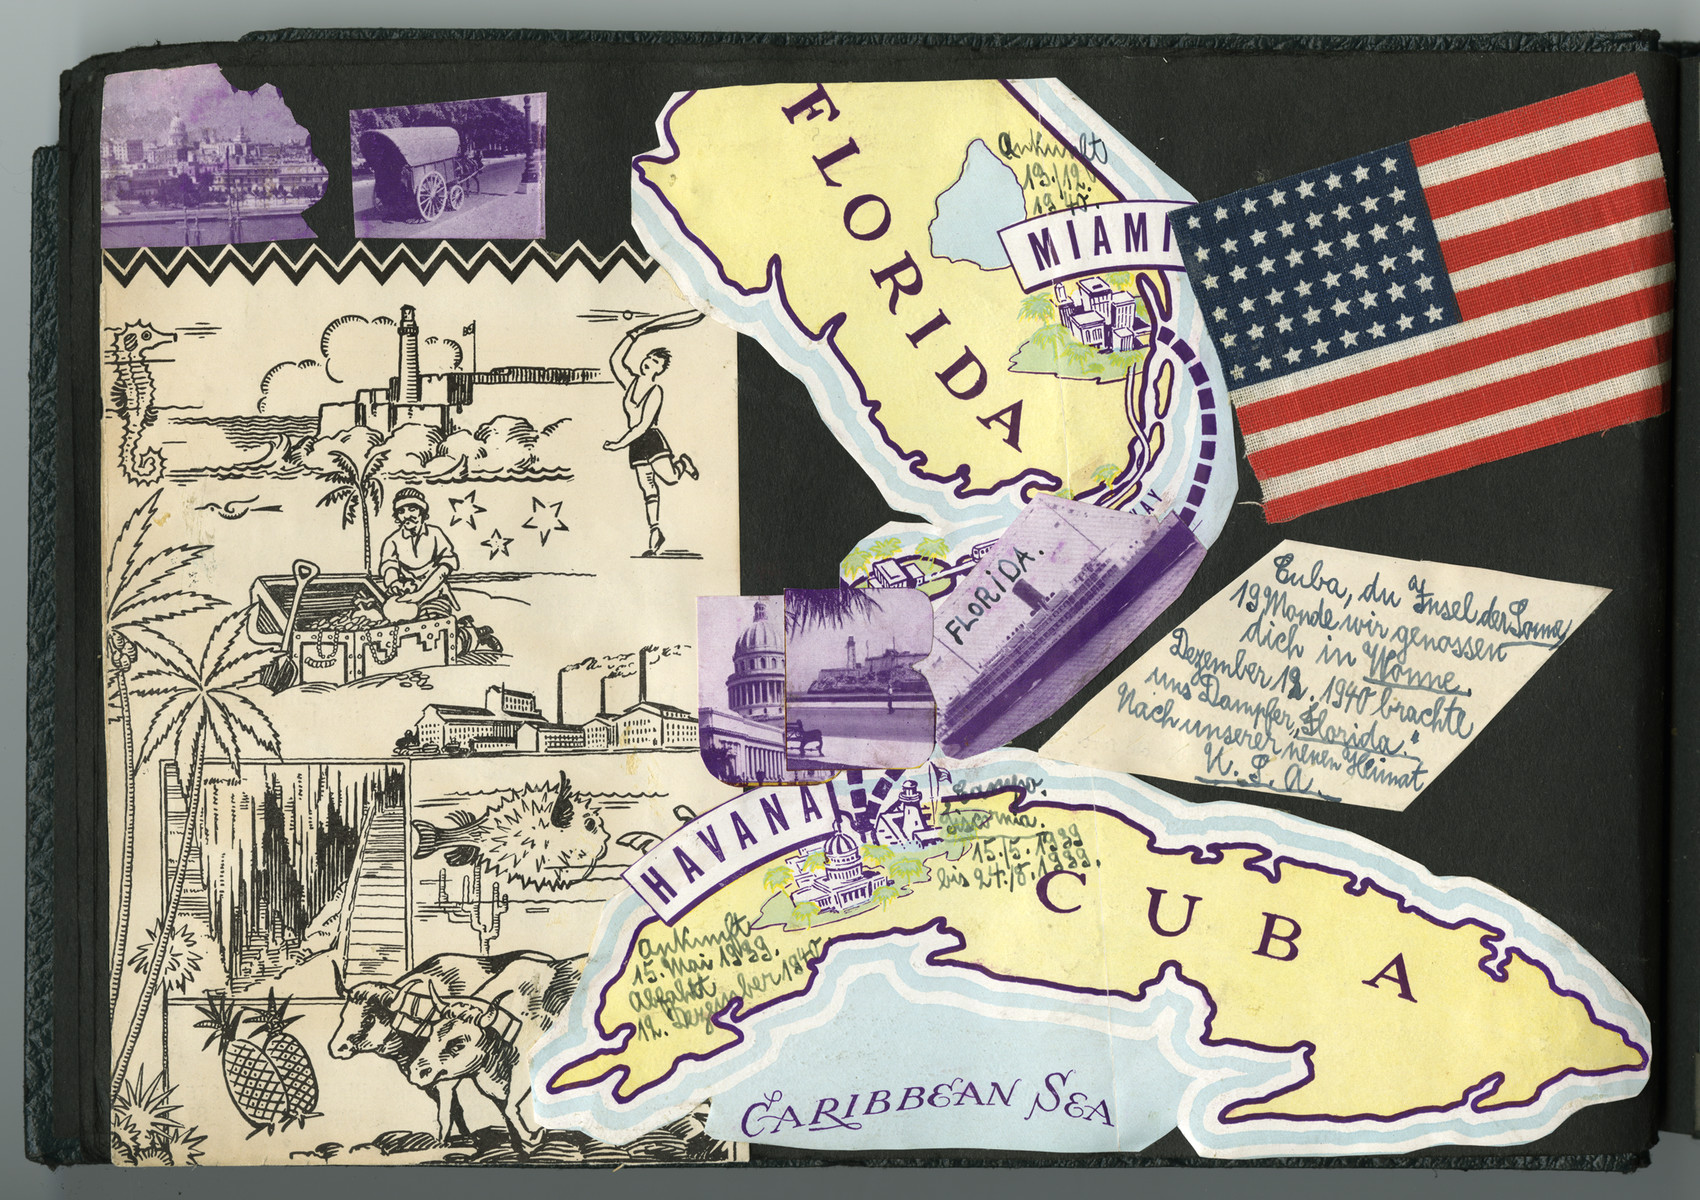 A page from a scrapbook with prictures of Cuba and Florida.